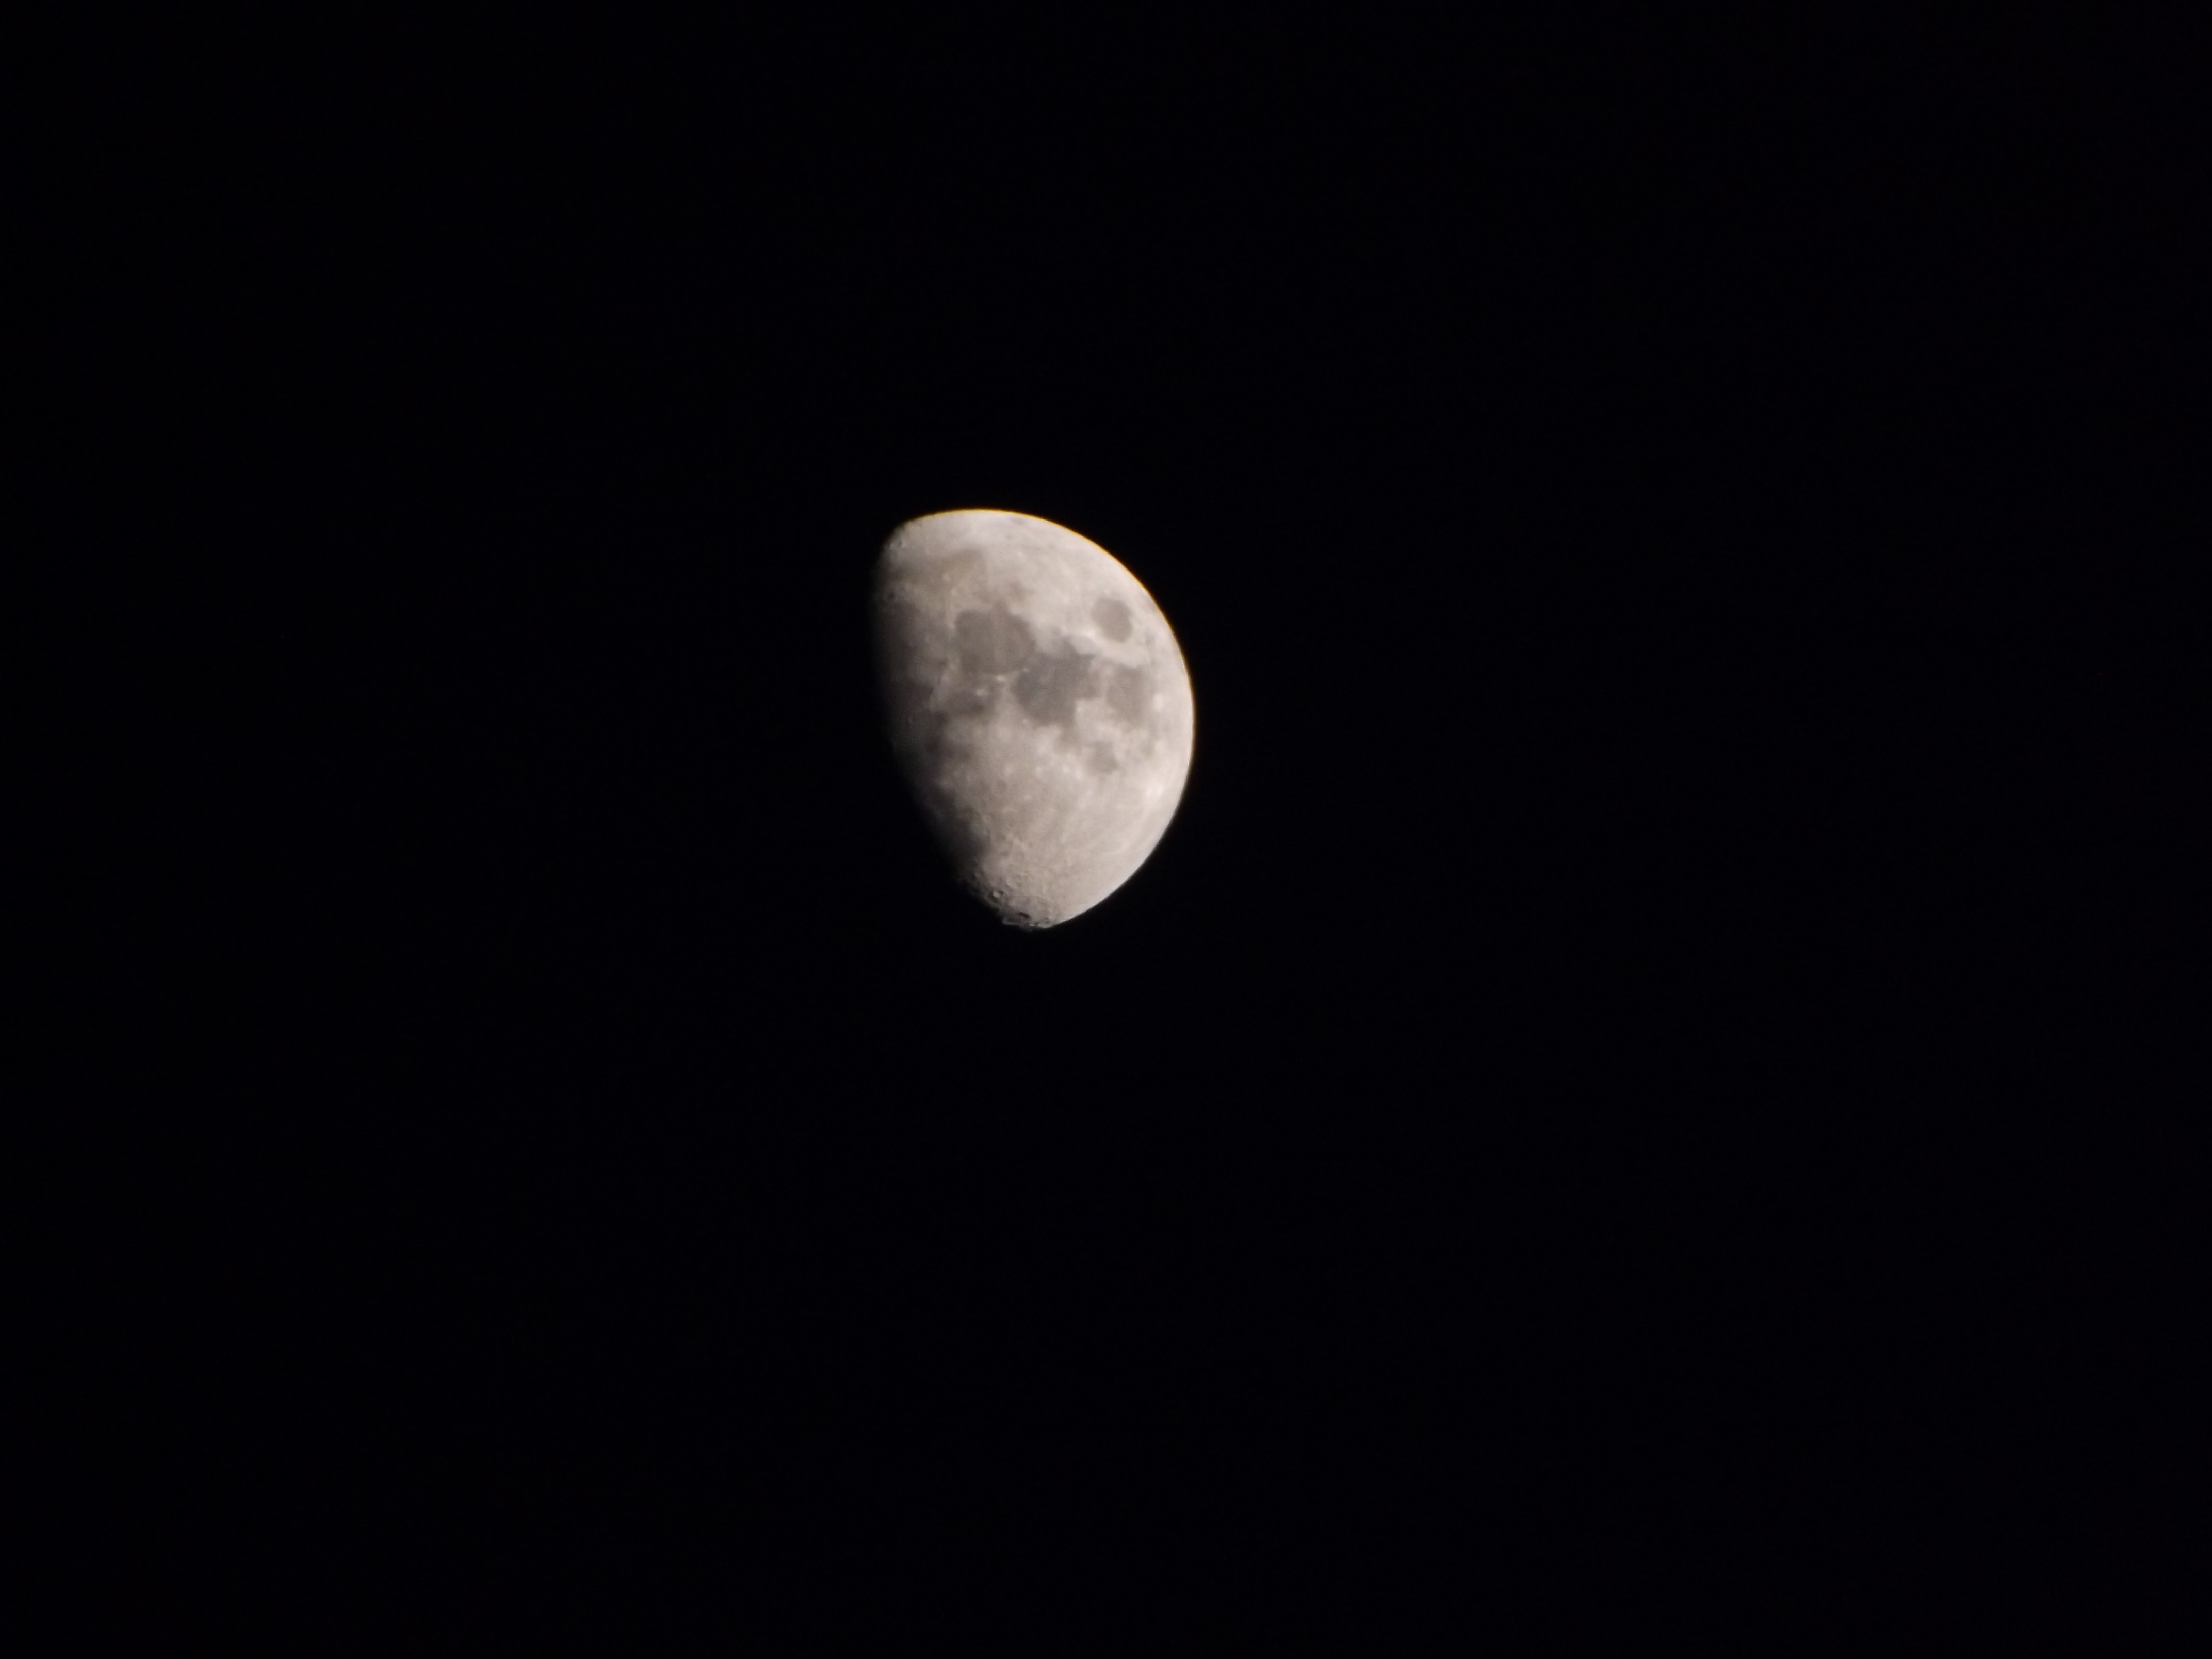 MOON 2015.03.29 20:51 by Apkx